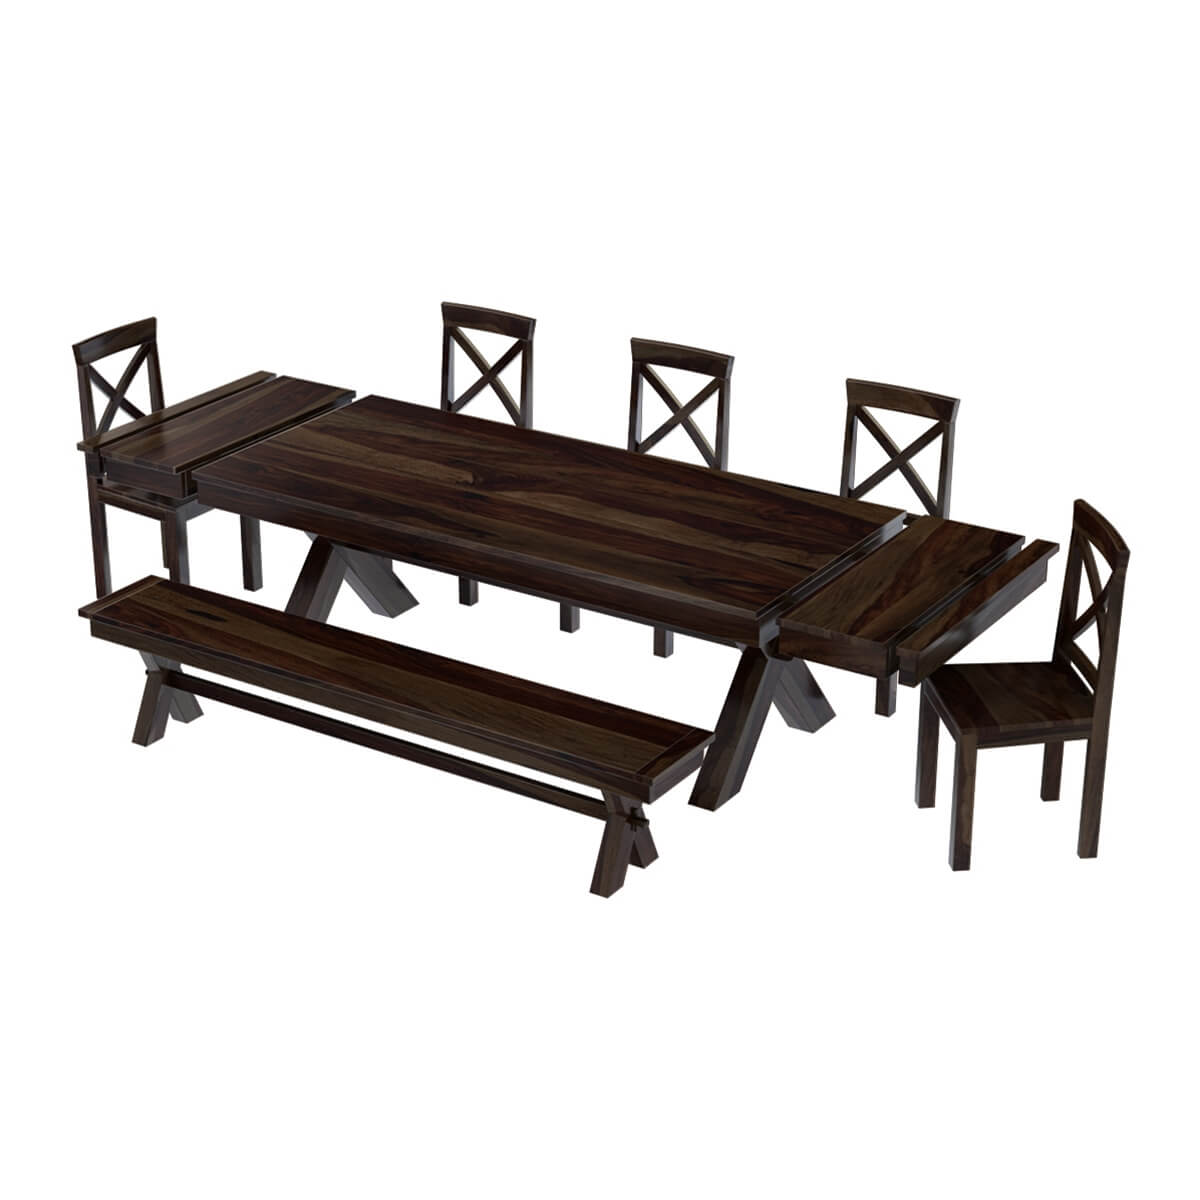 picnic style table with 2 indoor picnic table dining table plans